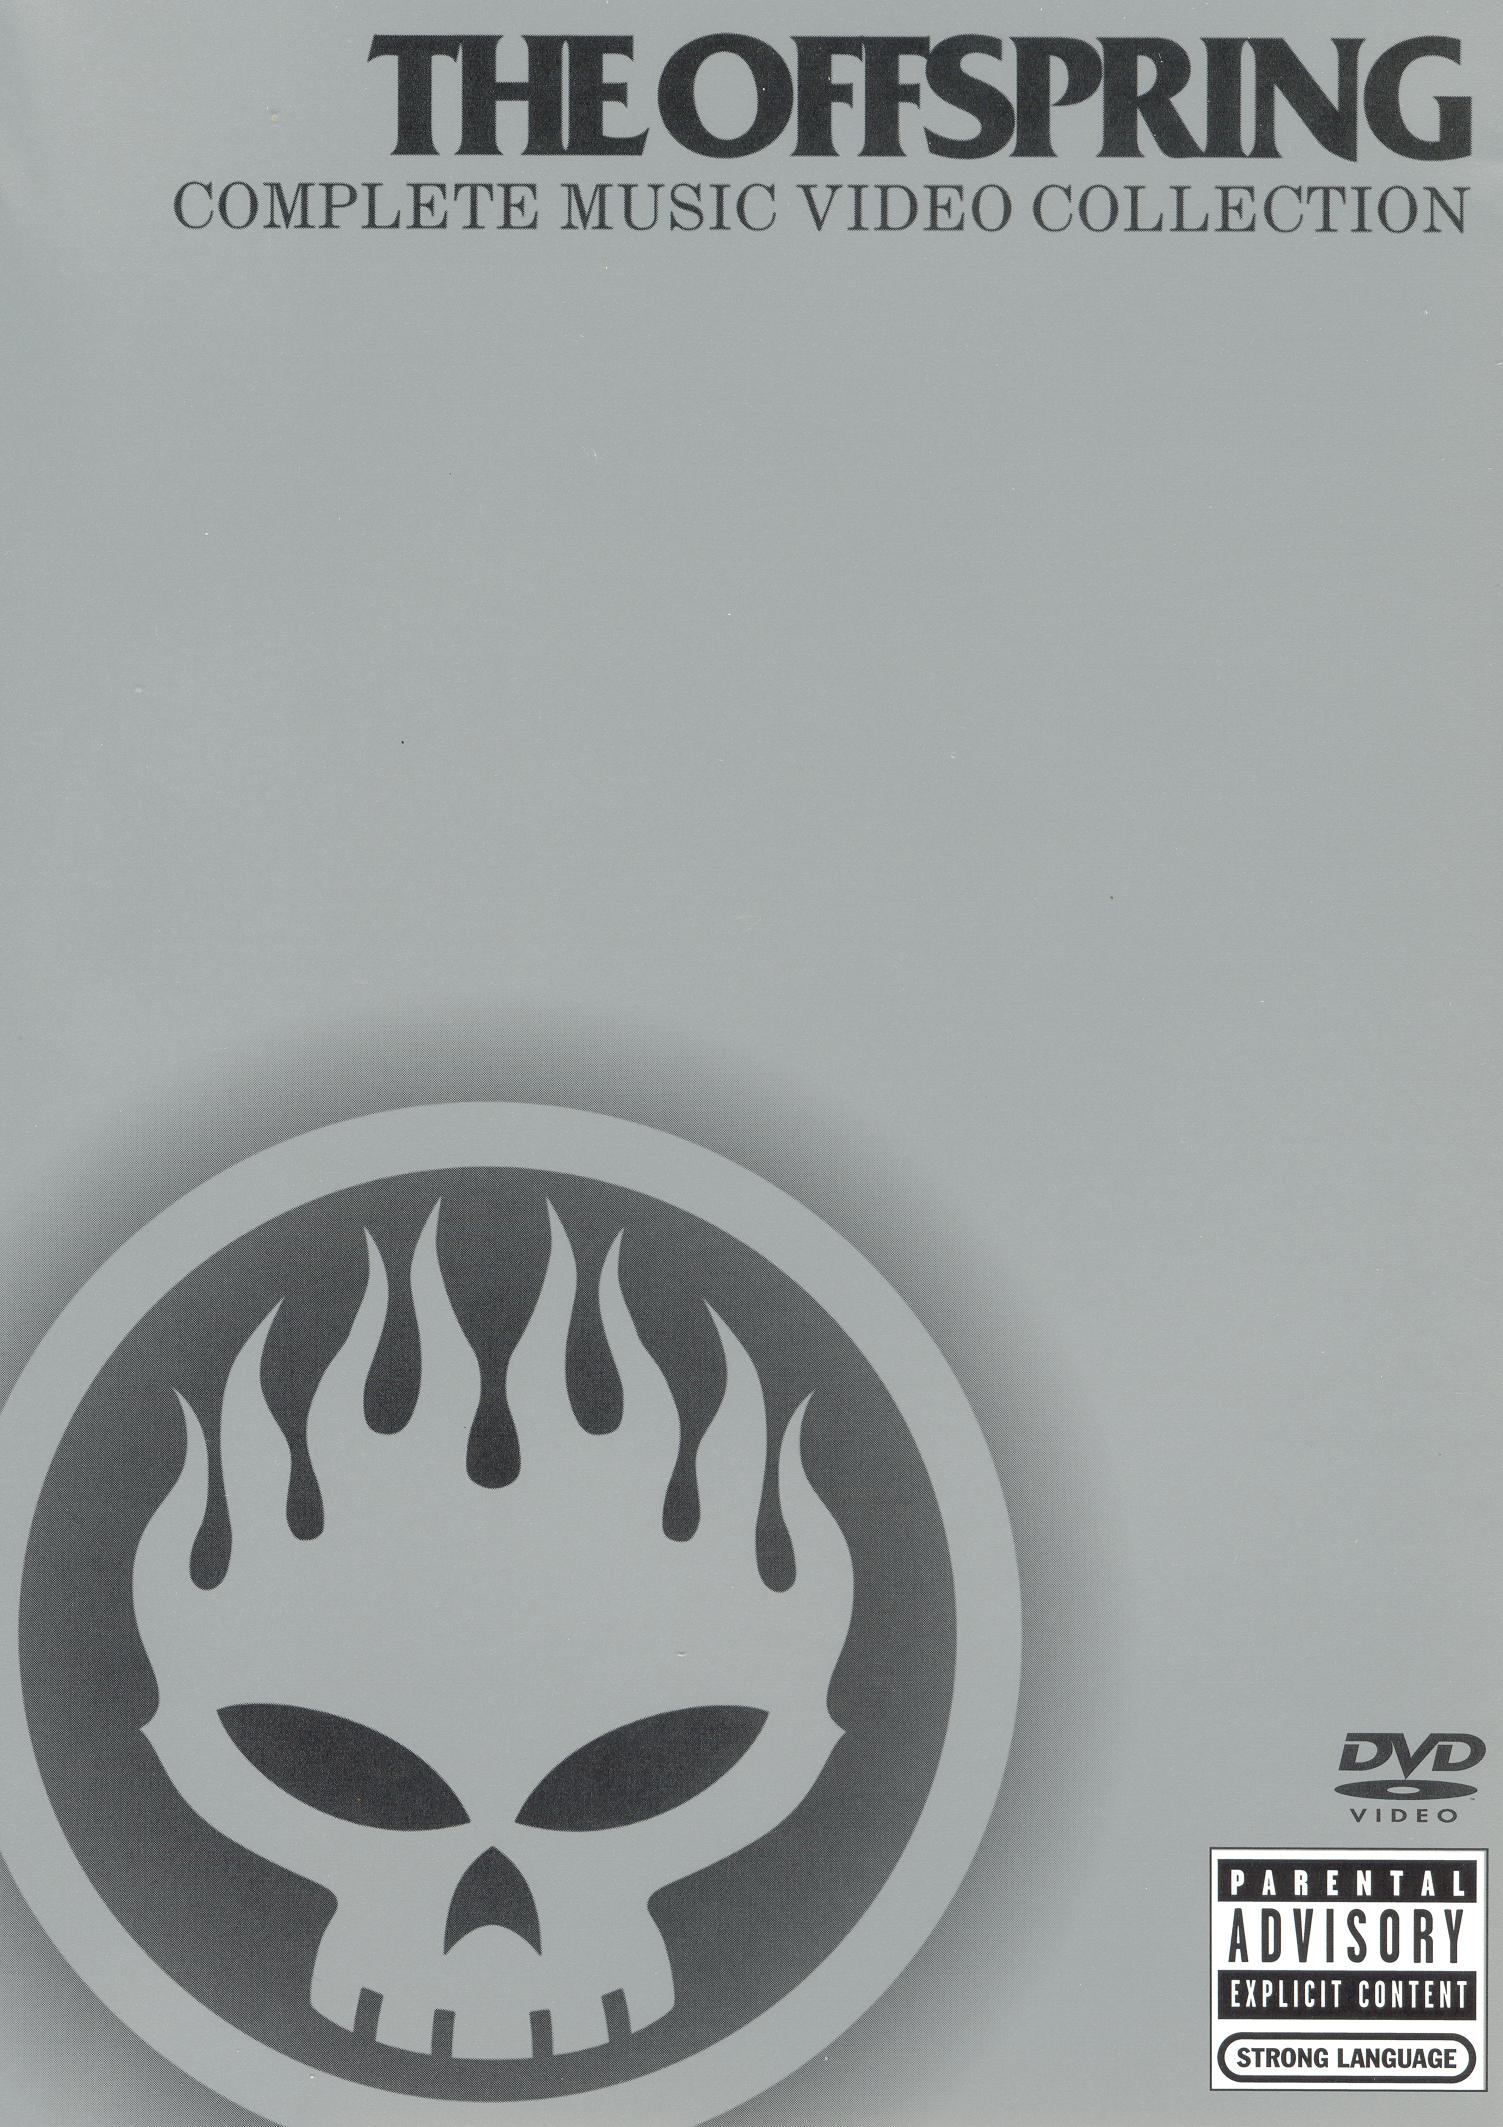 The Offspring: Complete Music Video Collection